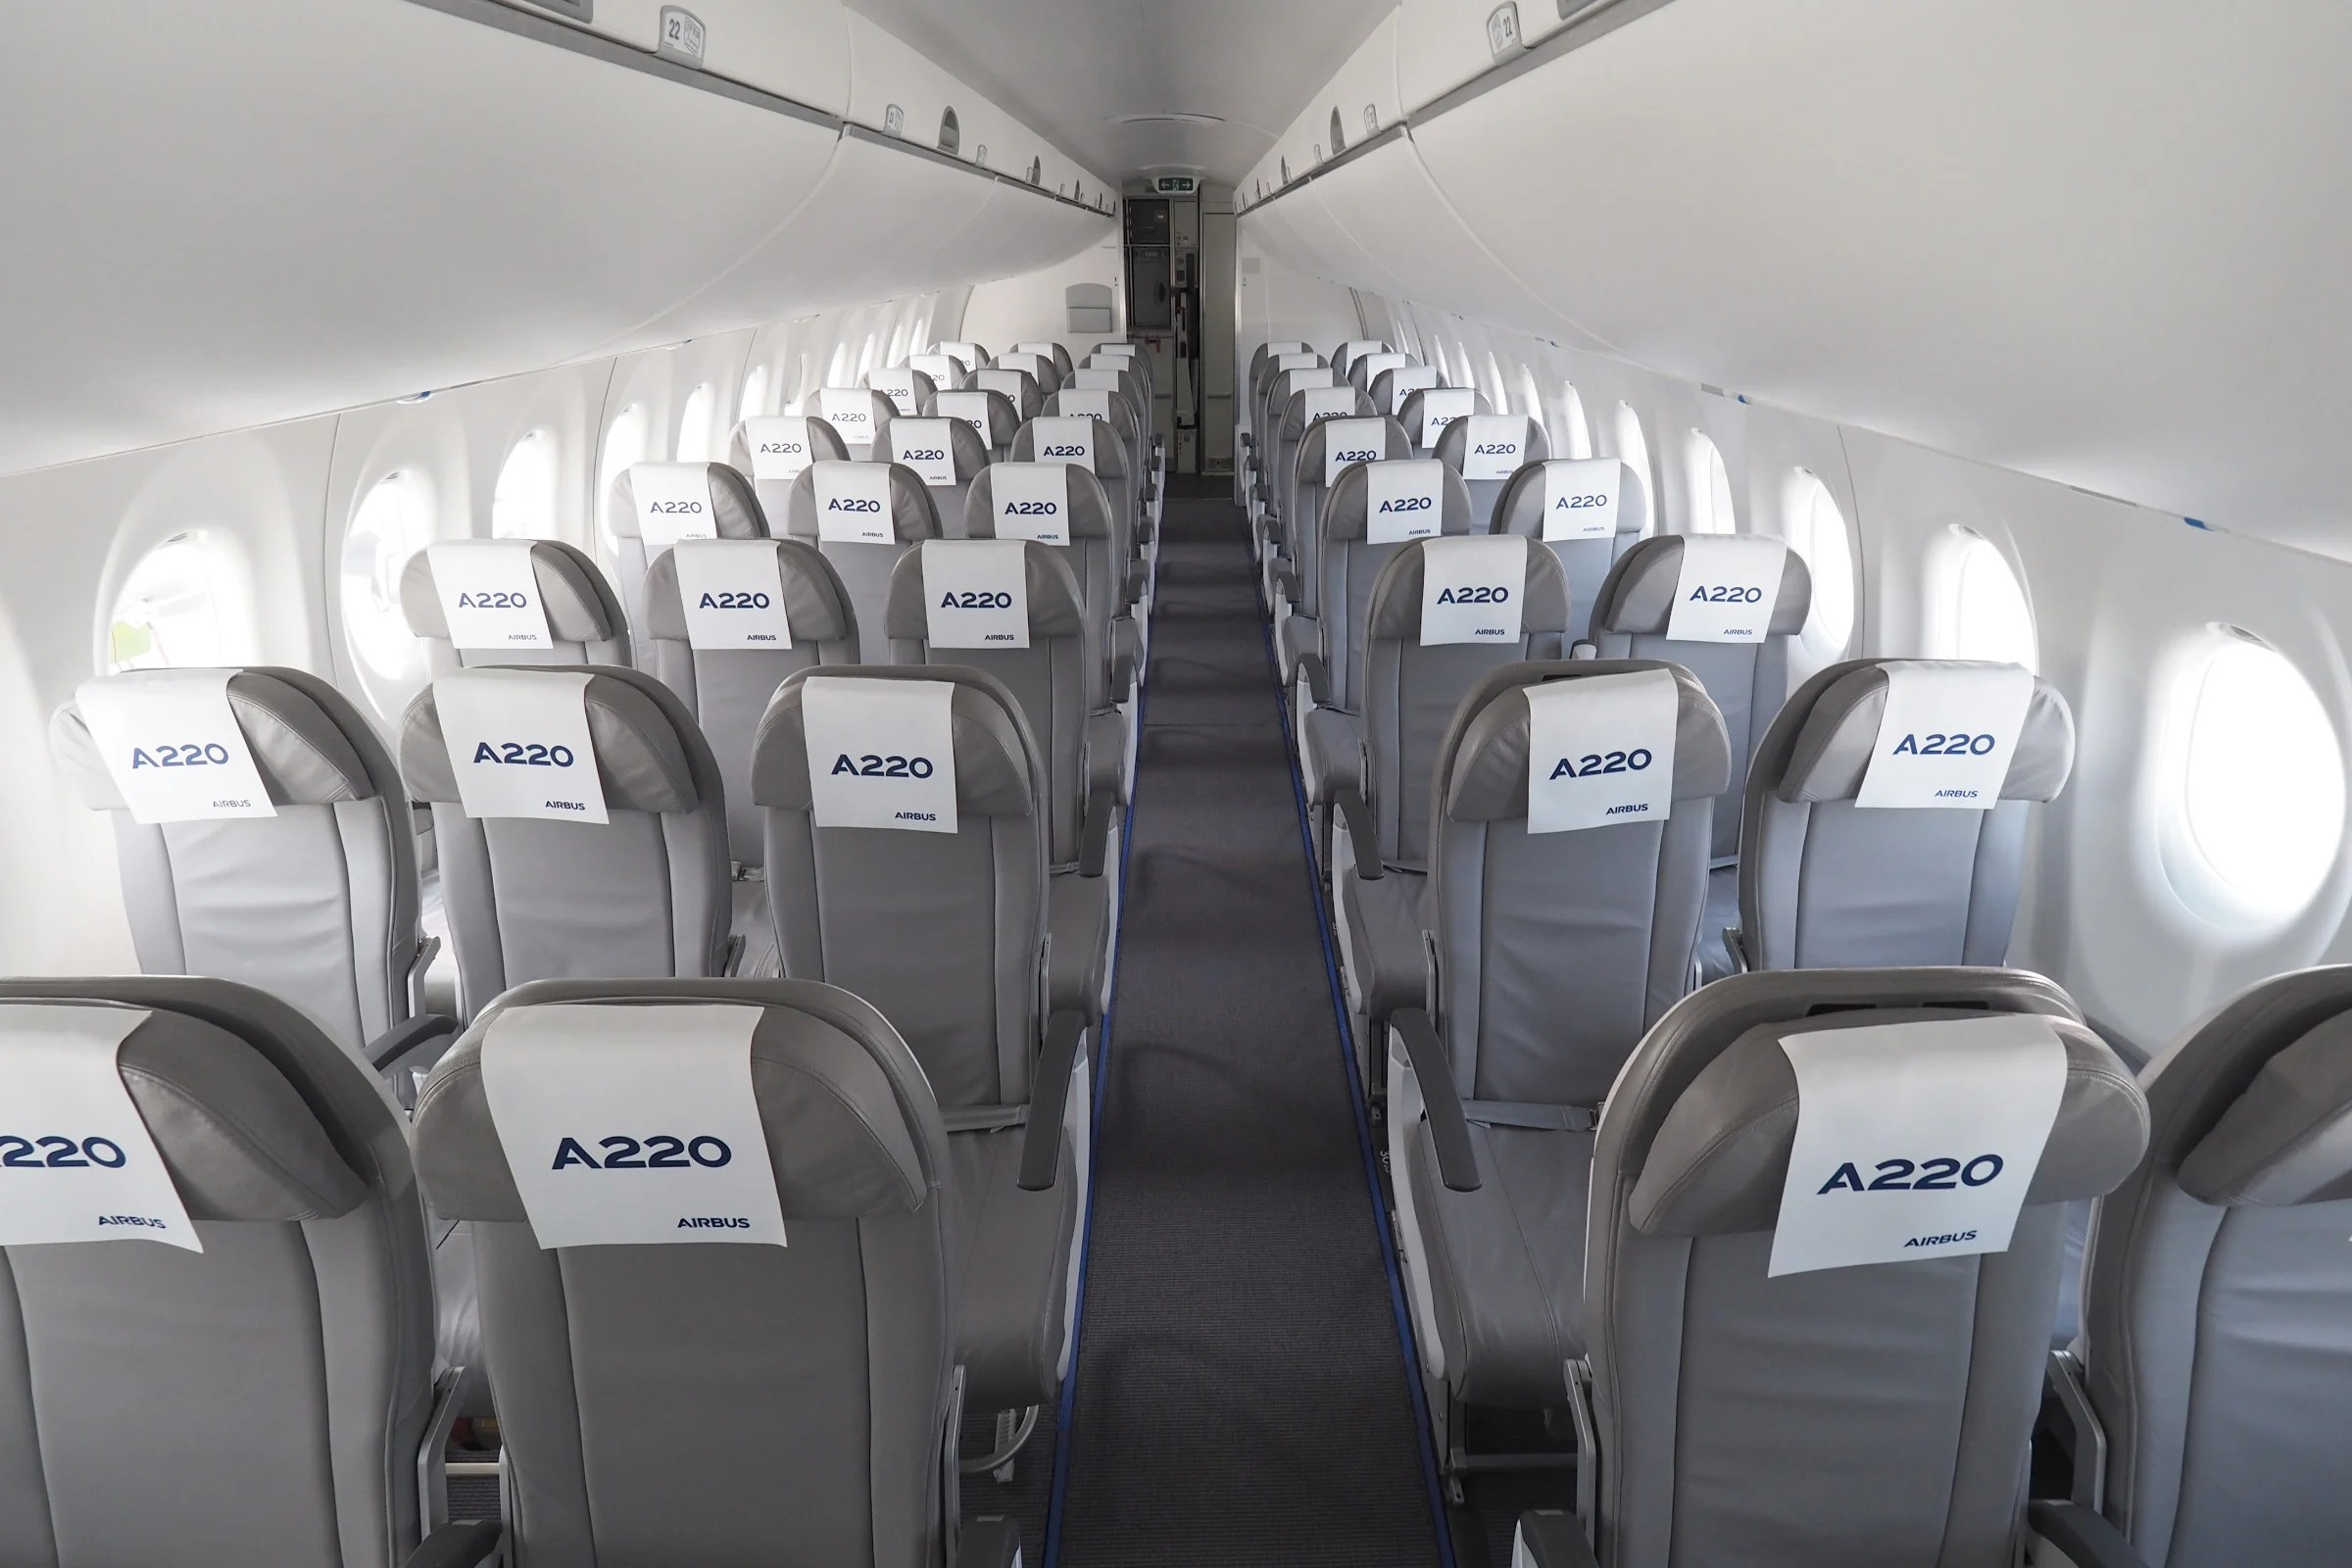 Comparing Economy Seat Pitch On The New Airbus A220 300